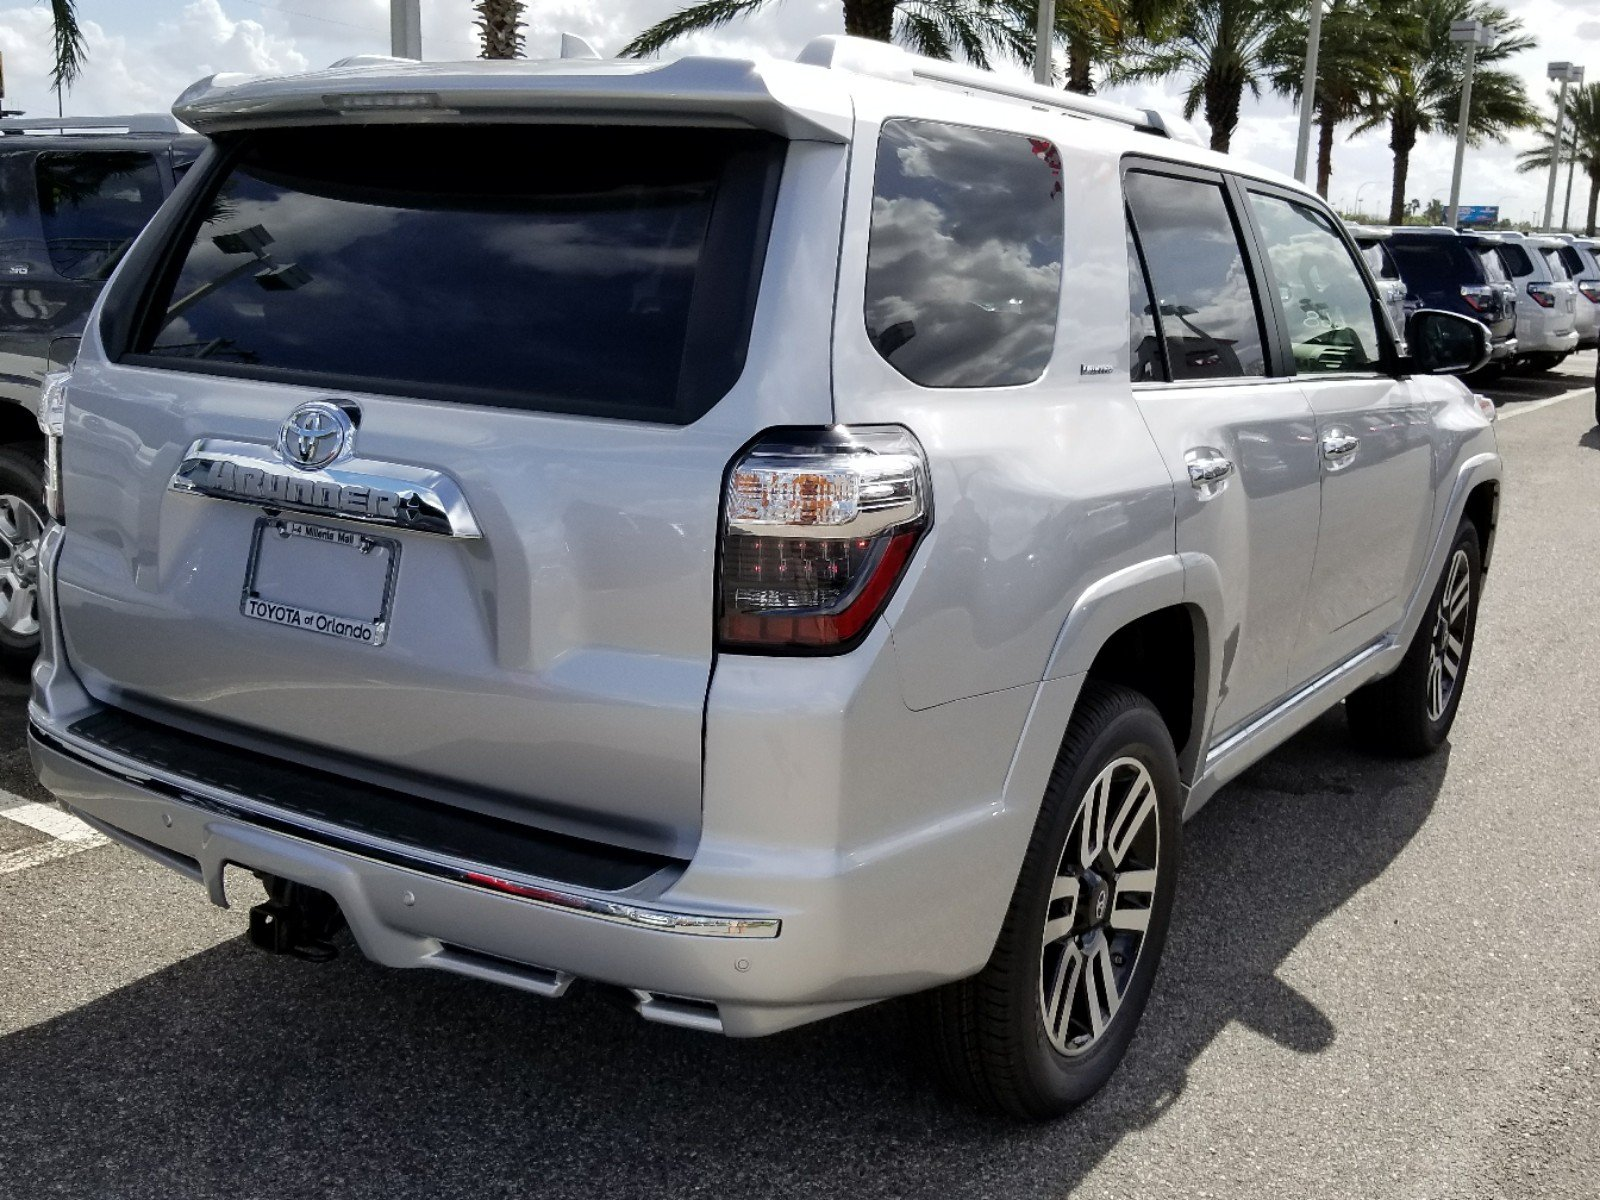 810c2e455c7e07d3237c846971048fad Great Description About Used toyota 4runner for Sale